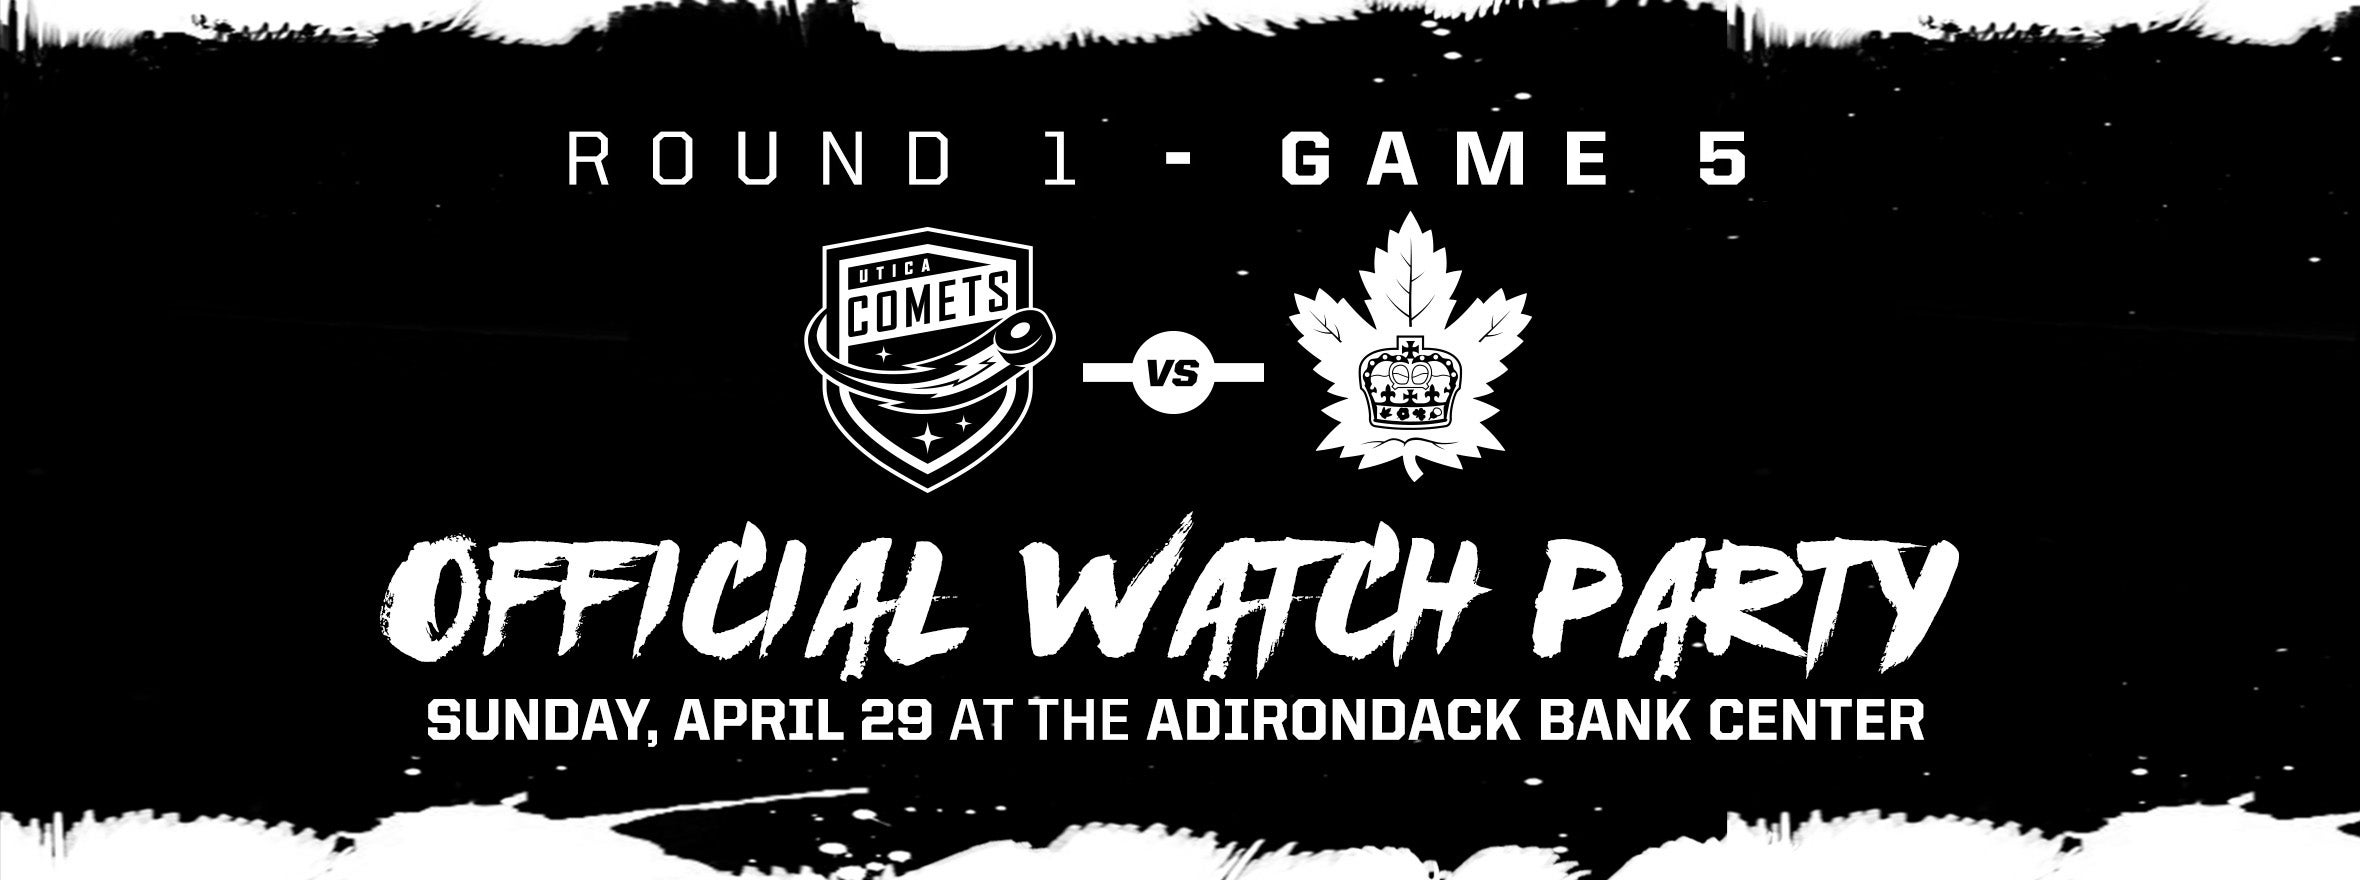 COMETS ANNOUNCE GAME FIVE WATCH PARTY